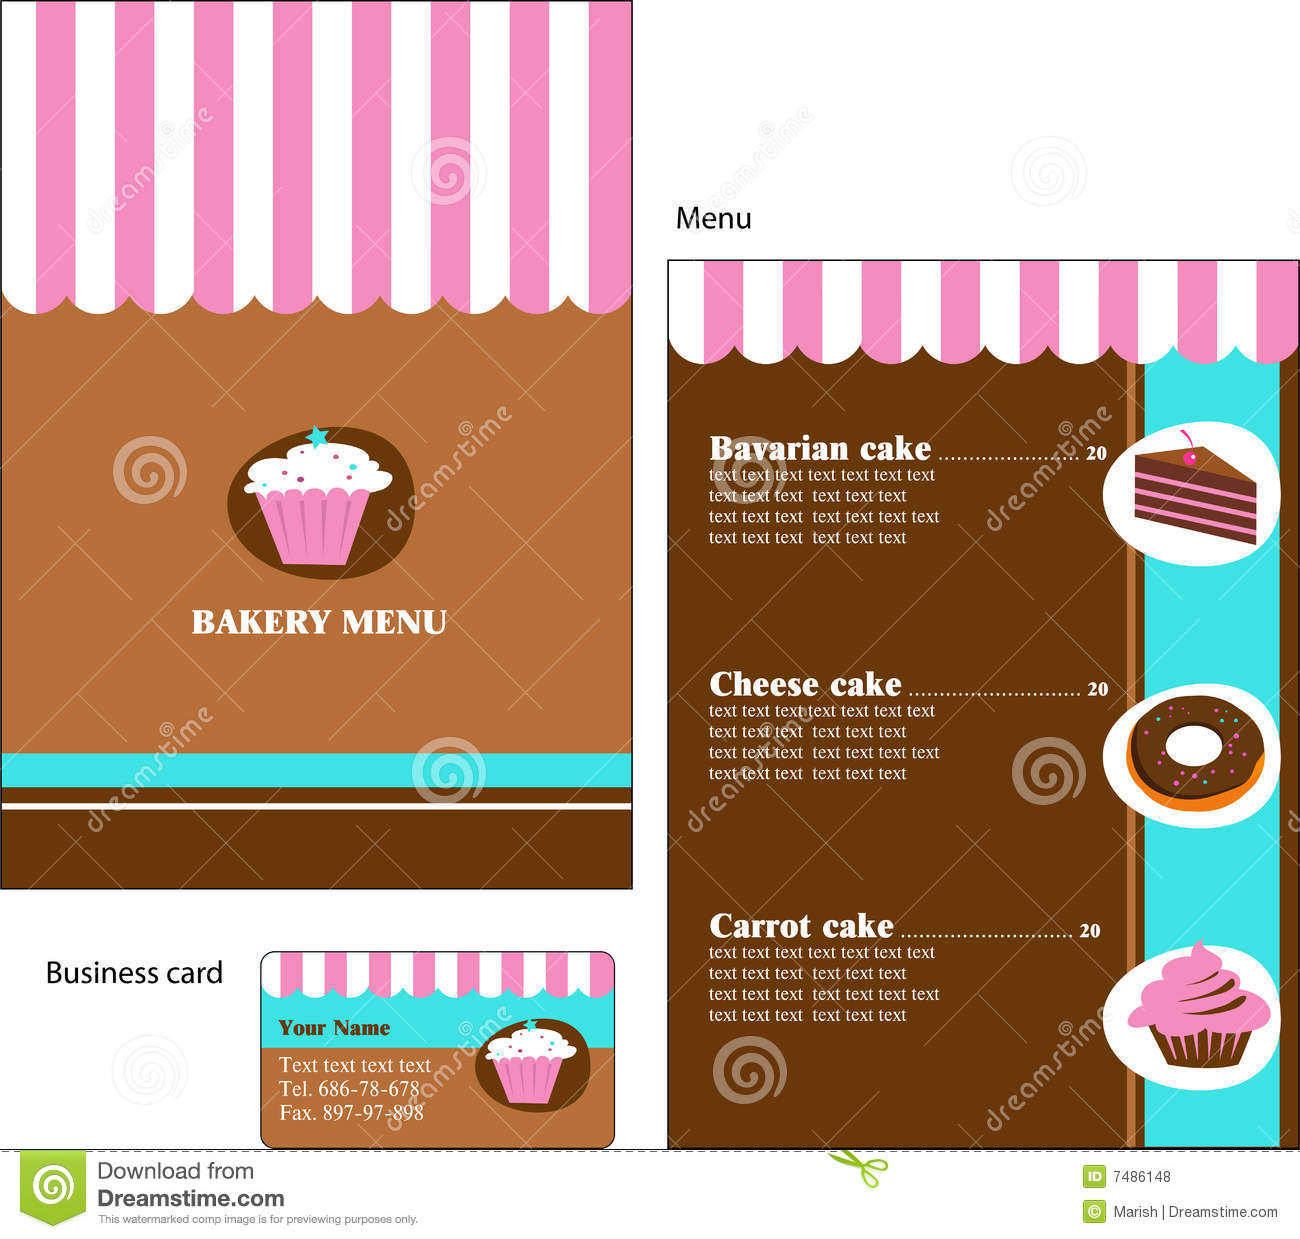 Marvelous Template Designs Of Bakery And Restaurant Menu Regard To Free Downloadable Restaurant Menu Templates